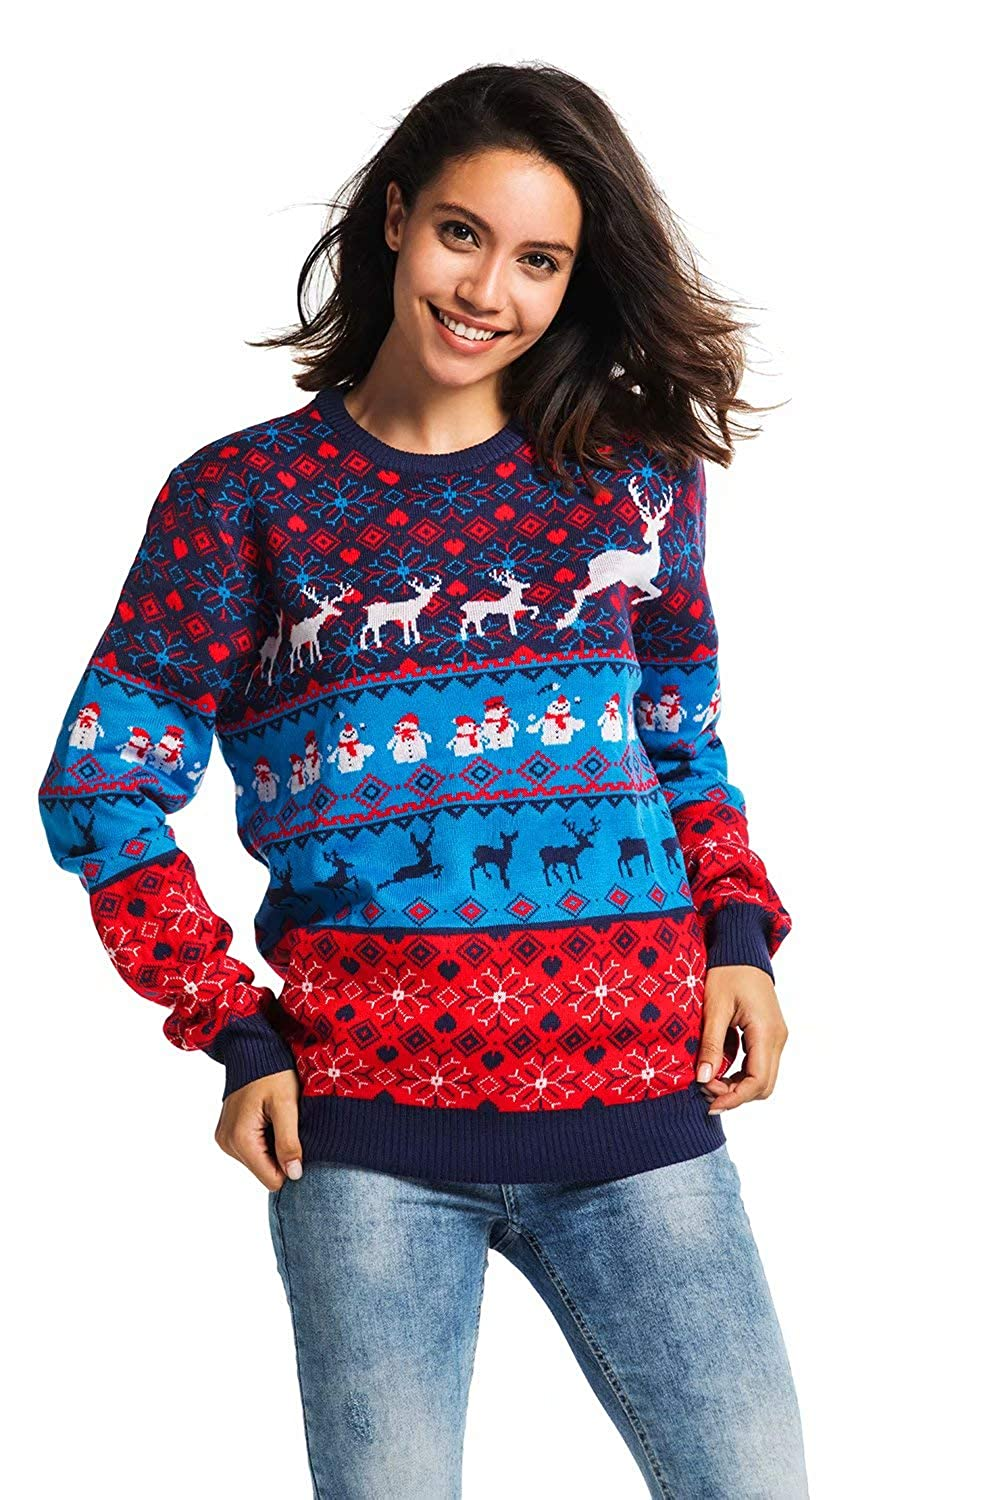 Unisex Women's Ugly Christmas Sweater Reindeer Xmas Pullover - Cool Classic Fair Isle